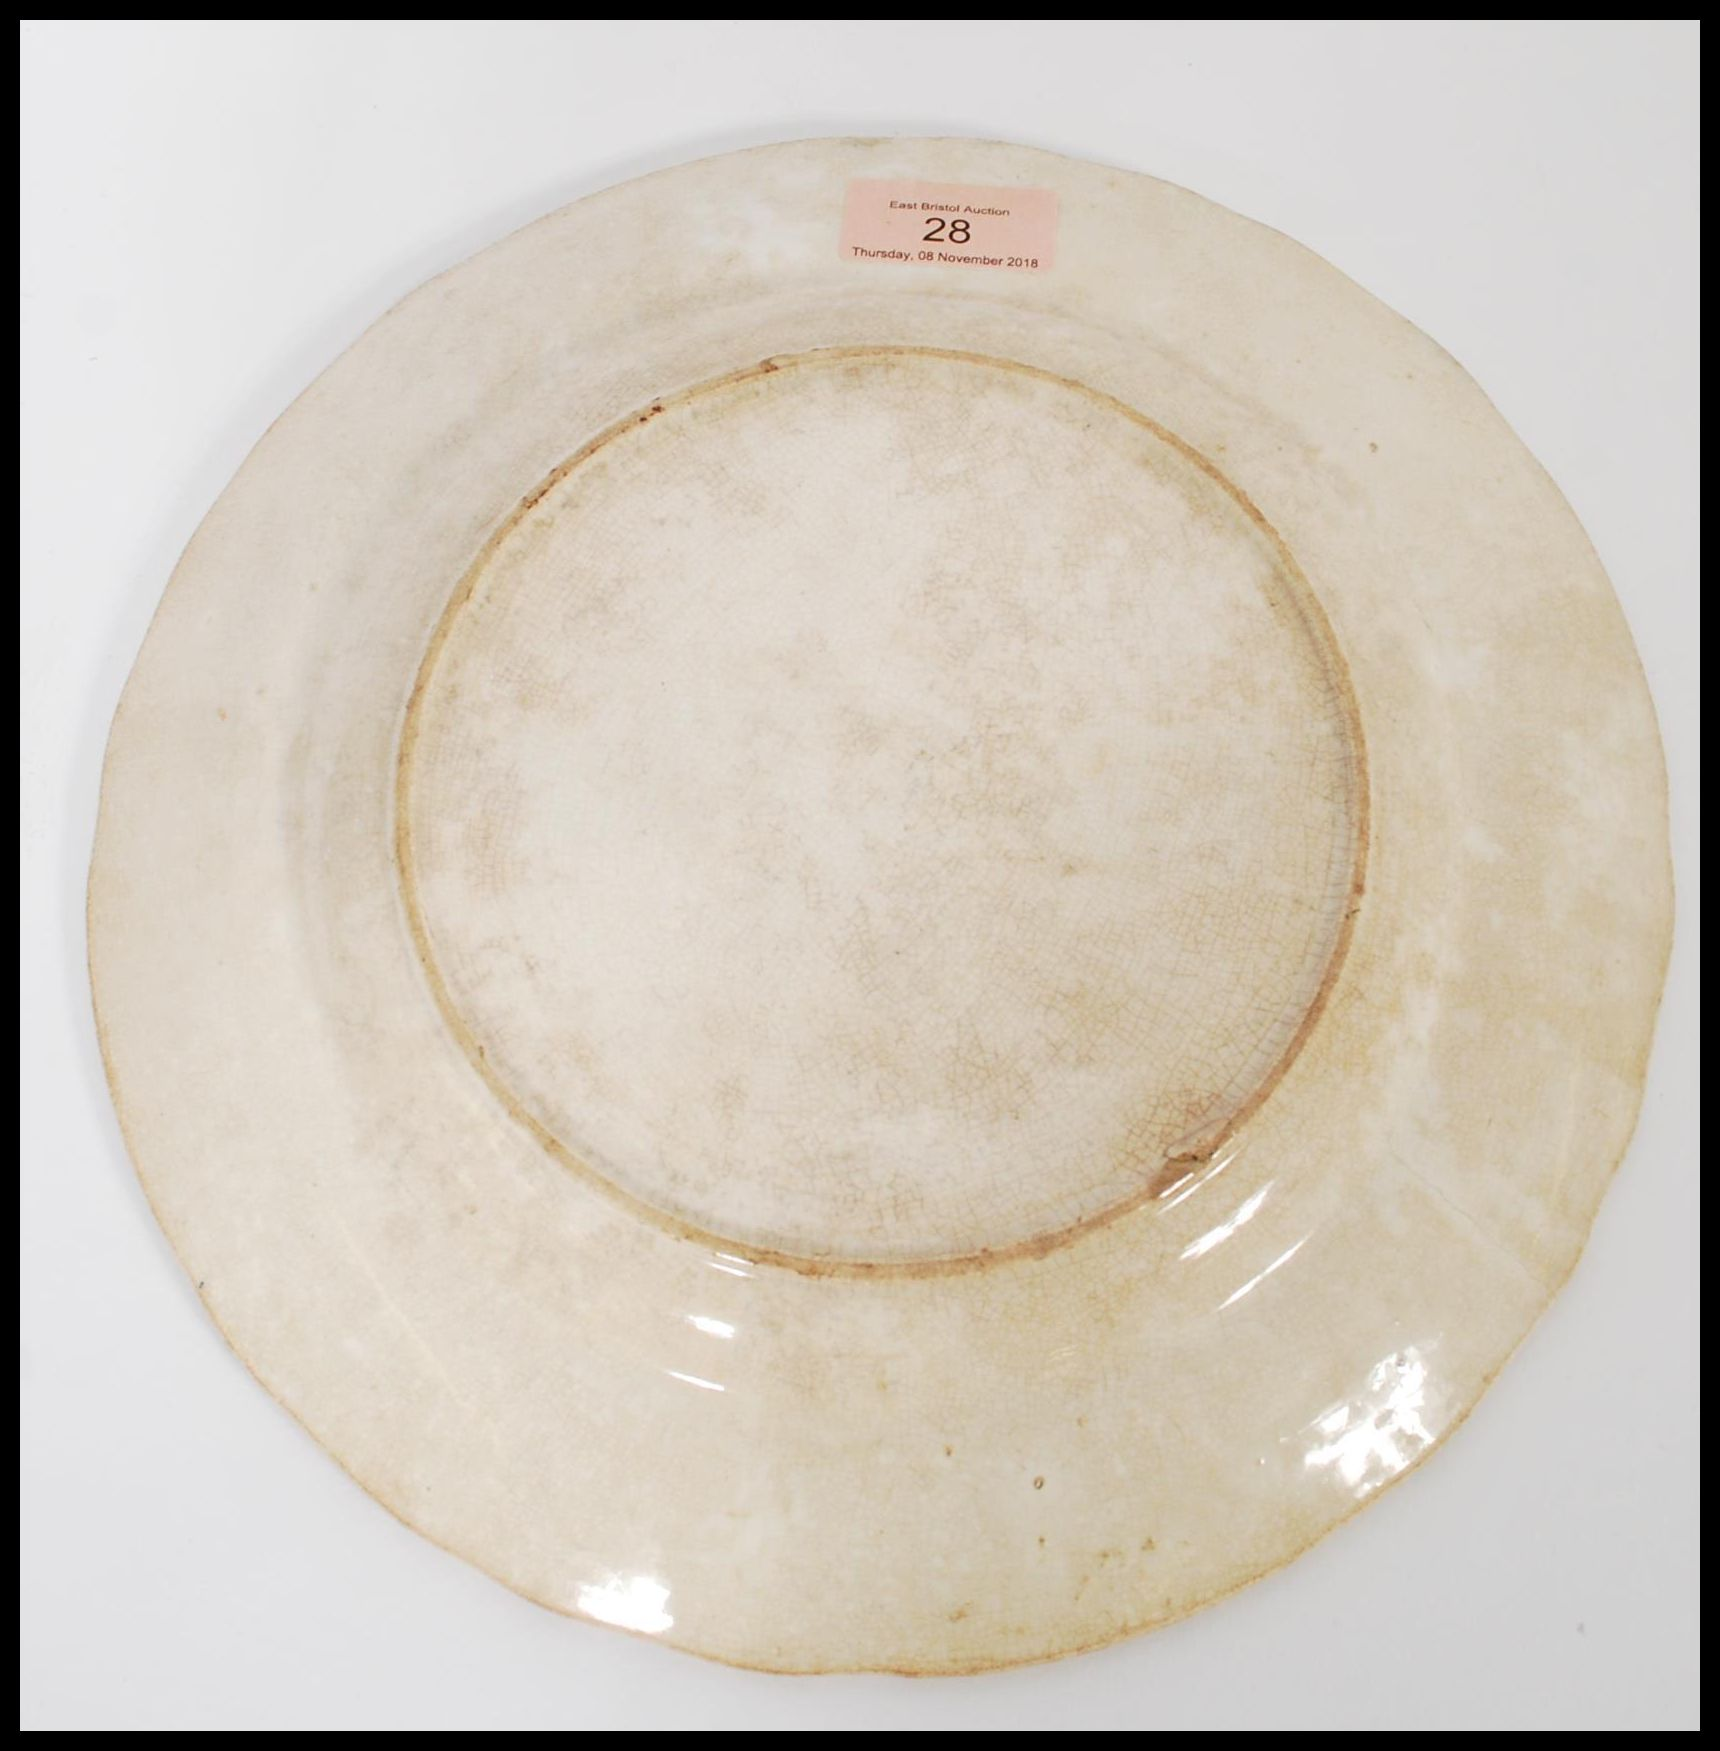 Lot 28 - Local Interest: A rare antique 19th century Bristol related pottery transfer printed plate with